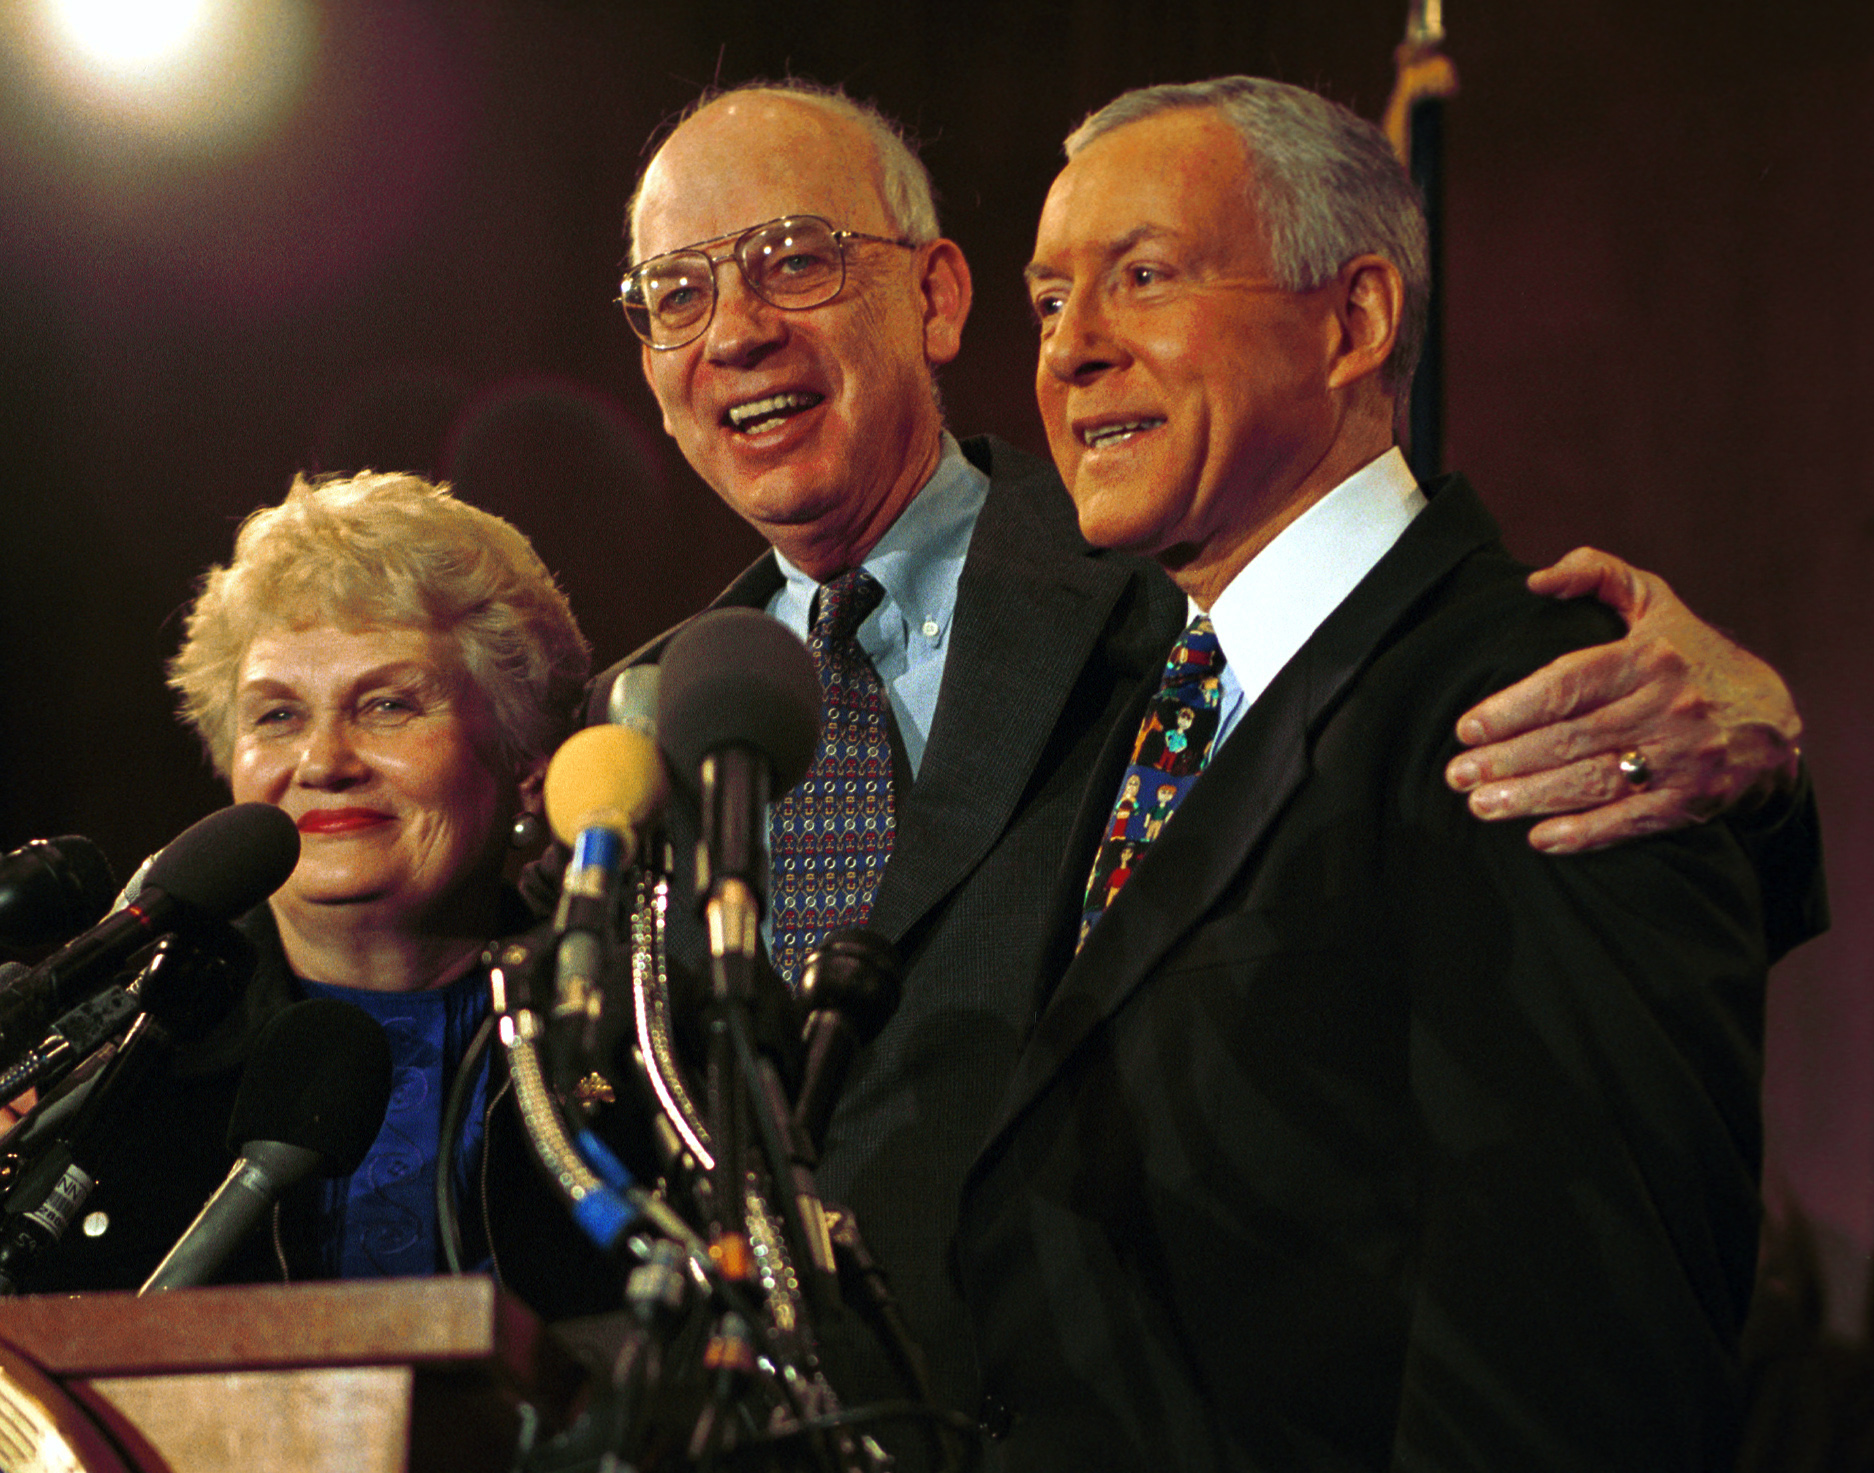 Utah Sen. Orrin Hatch, with Sen. Bob Bennett and Hatch's wife Elaine shortly after announcing he would drop out of the presidential race and endorse fellow Republican candidate George W. Bush. (Tom Williams/Roll Call)